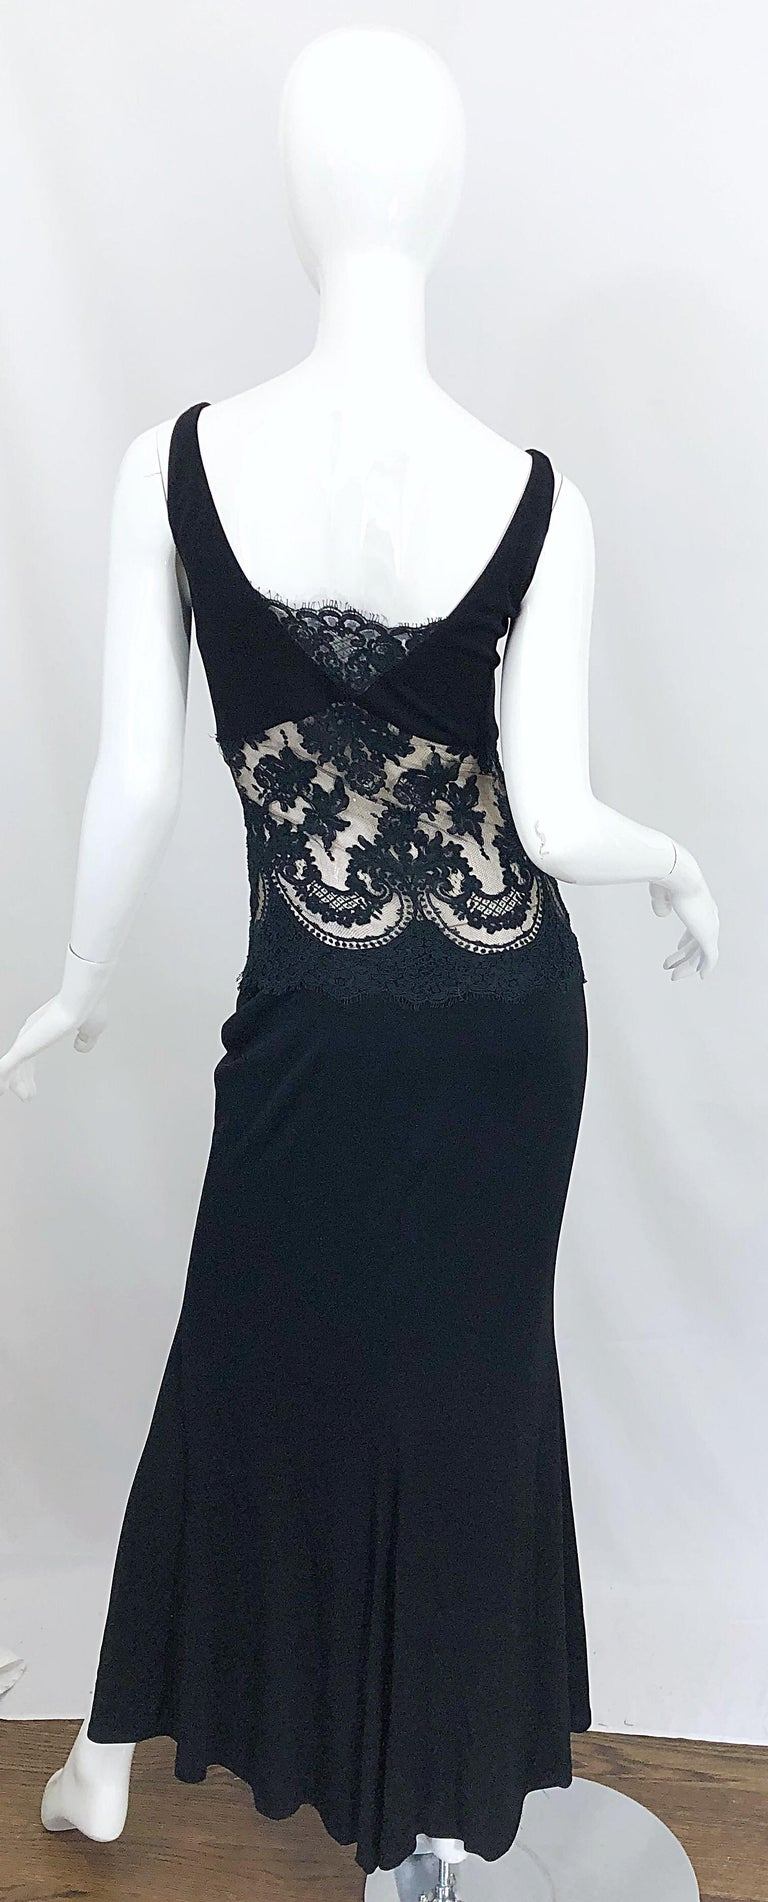 1990s Randolph Duke Black Sexy Lace Cut-Out Sleeveless Vintage 90s Evening Gown In Excellent Condition For Sale In Chicago, IL